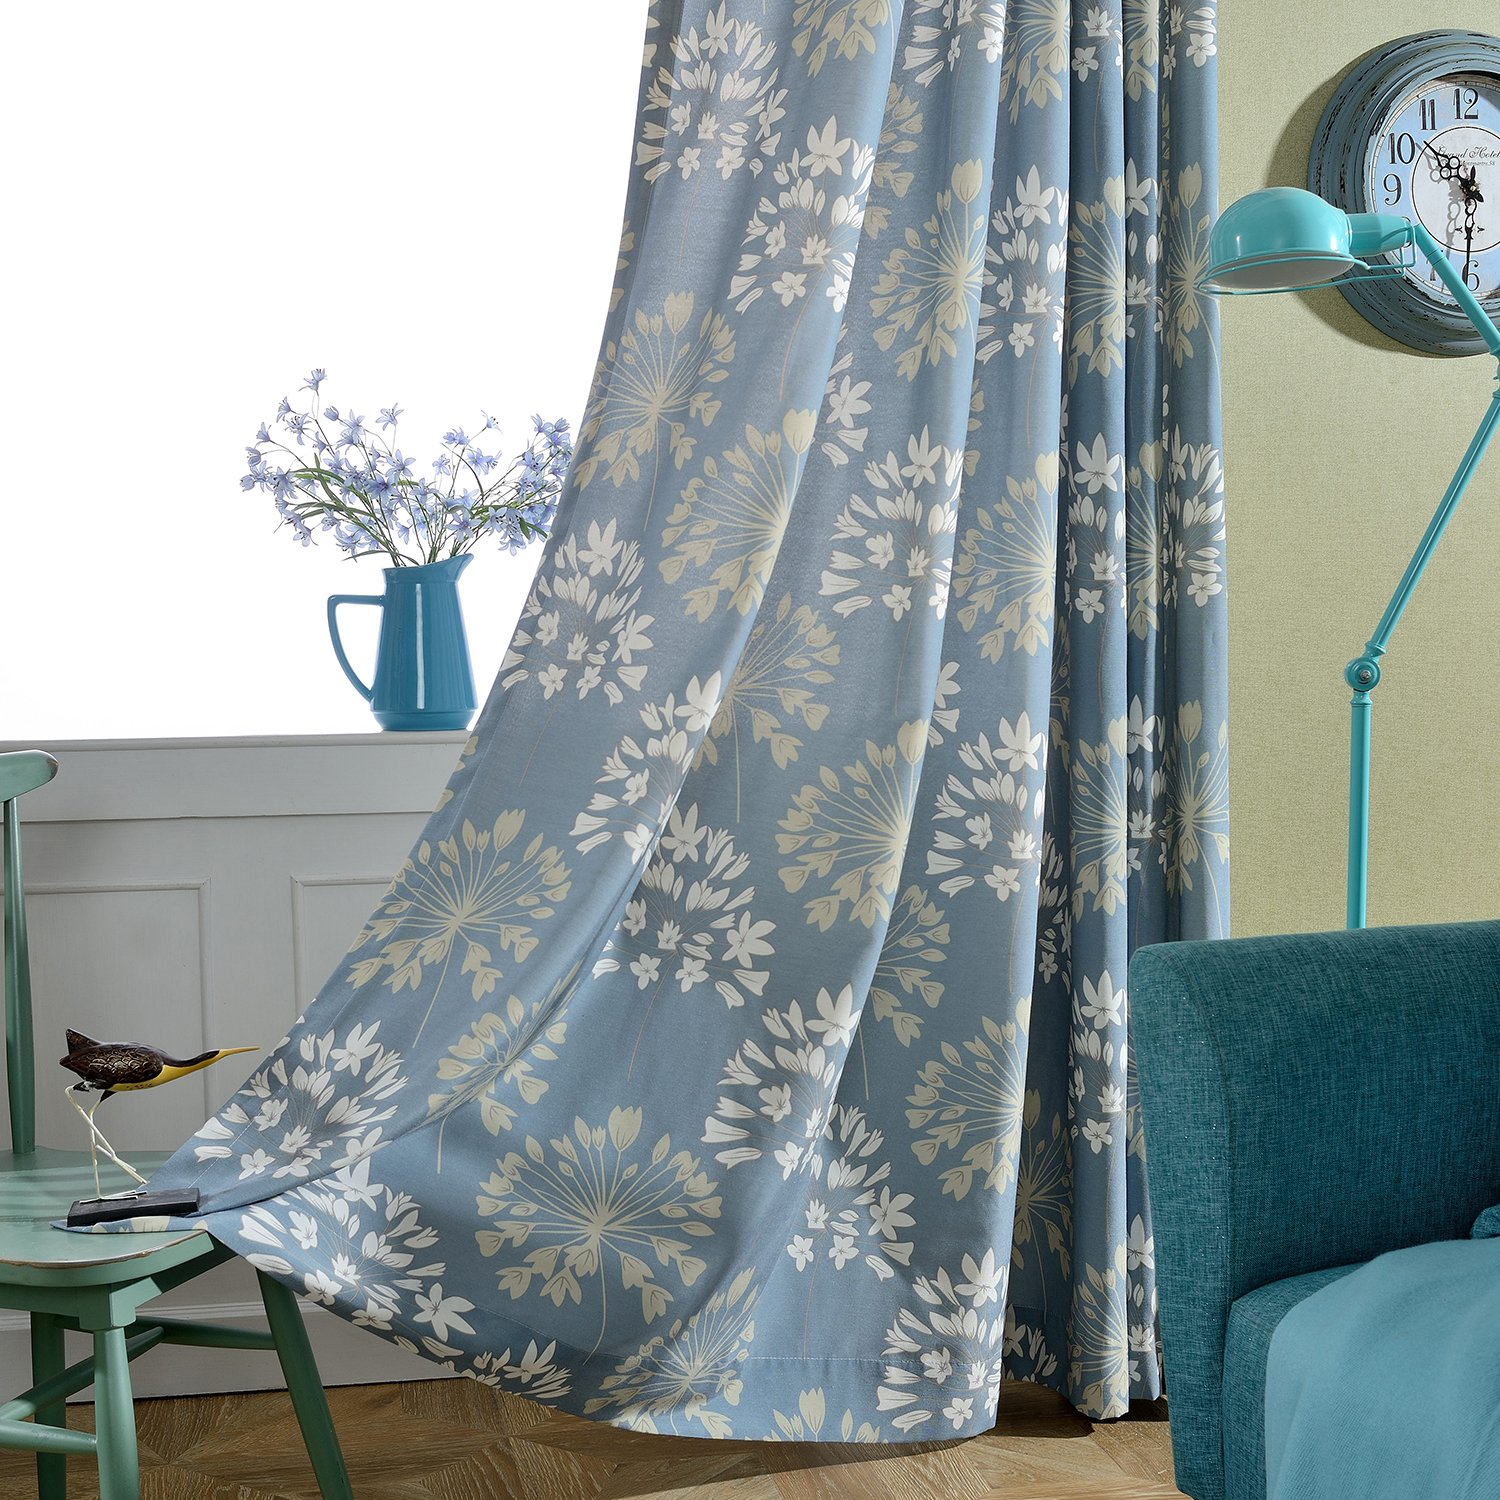 VOGOL Thermal Insulated Window Room Grommet Curtain Drapes for Bedroom and Living Room W52 x L96 inch,White Vintage Floral Patten in Blue Set of 2 Panels